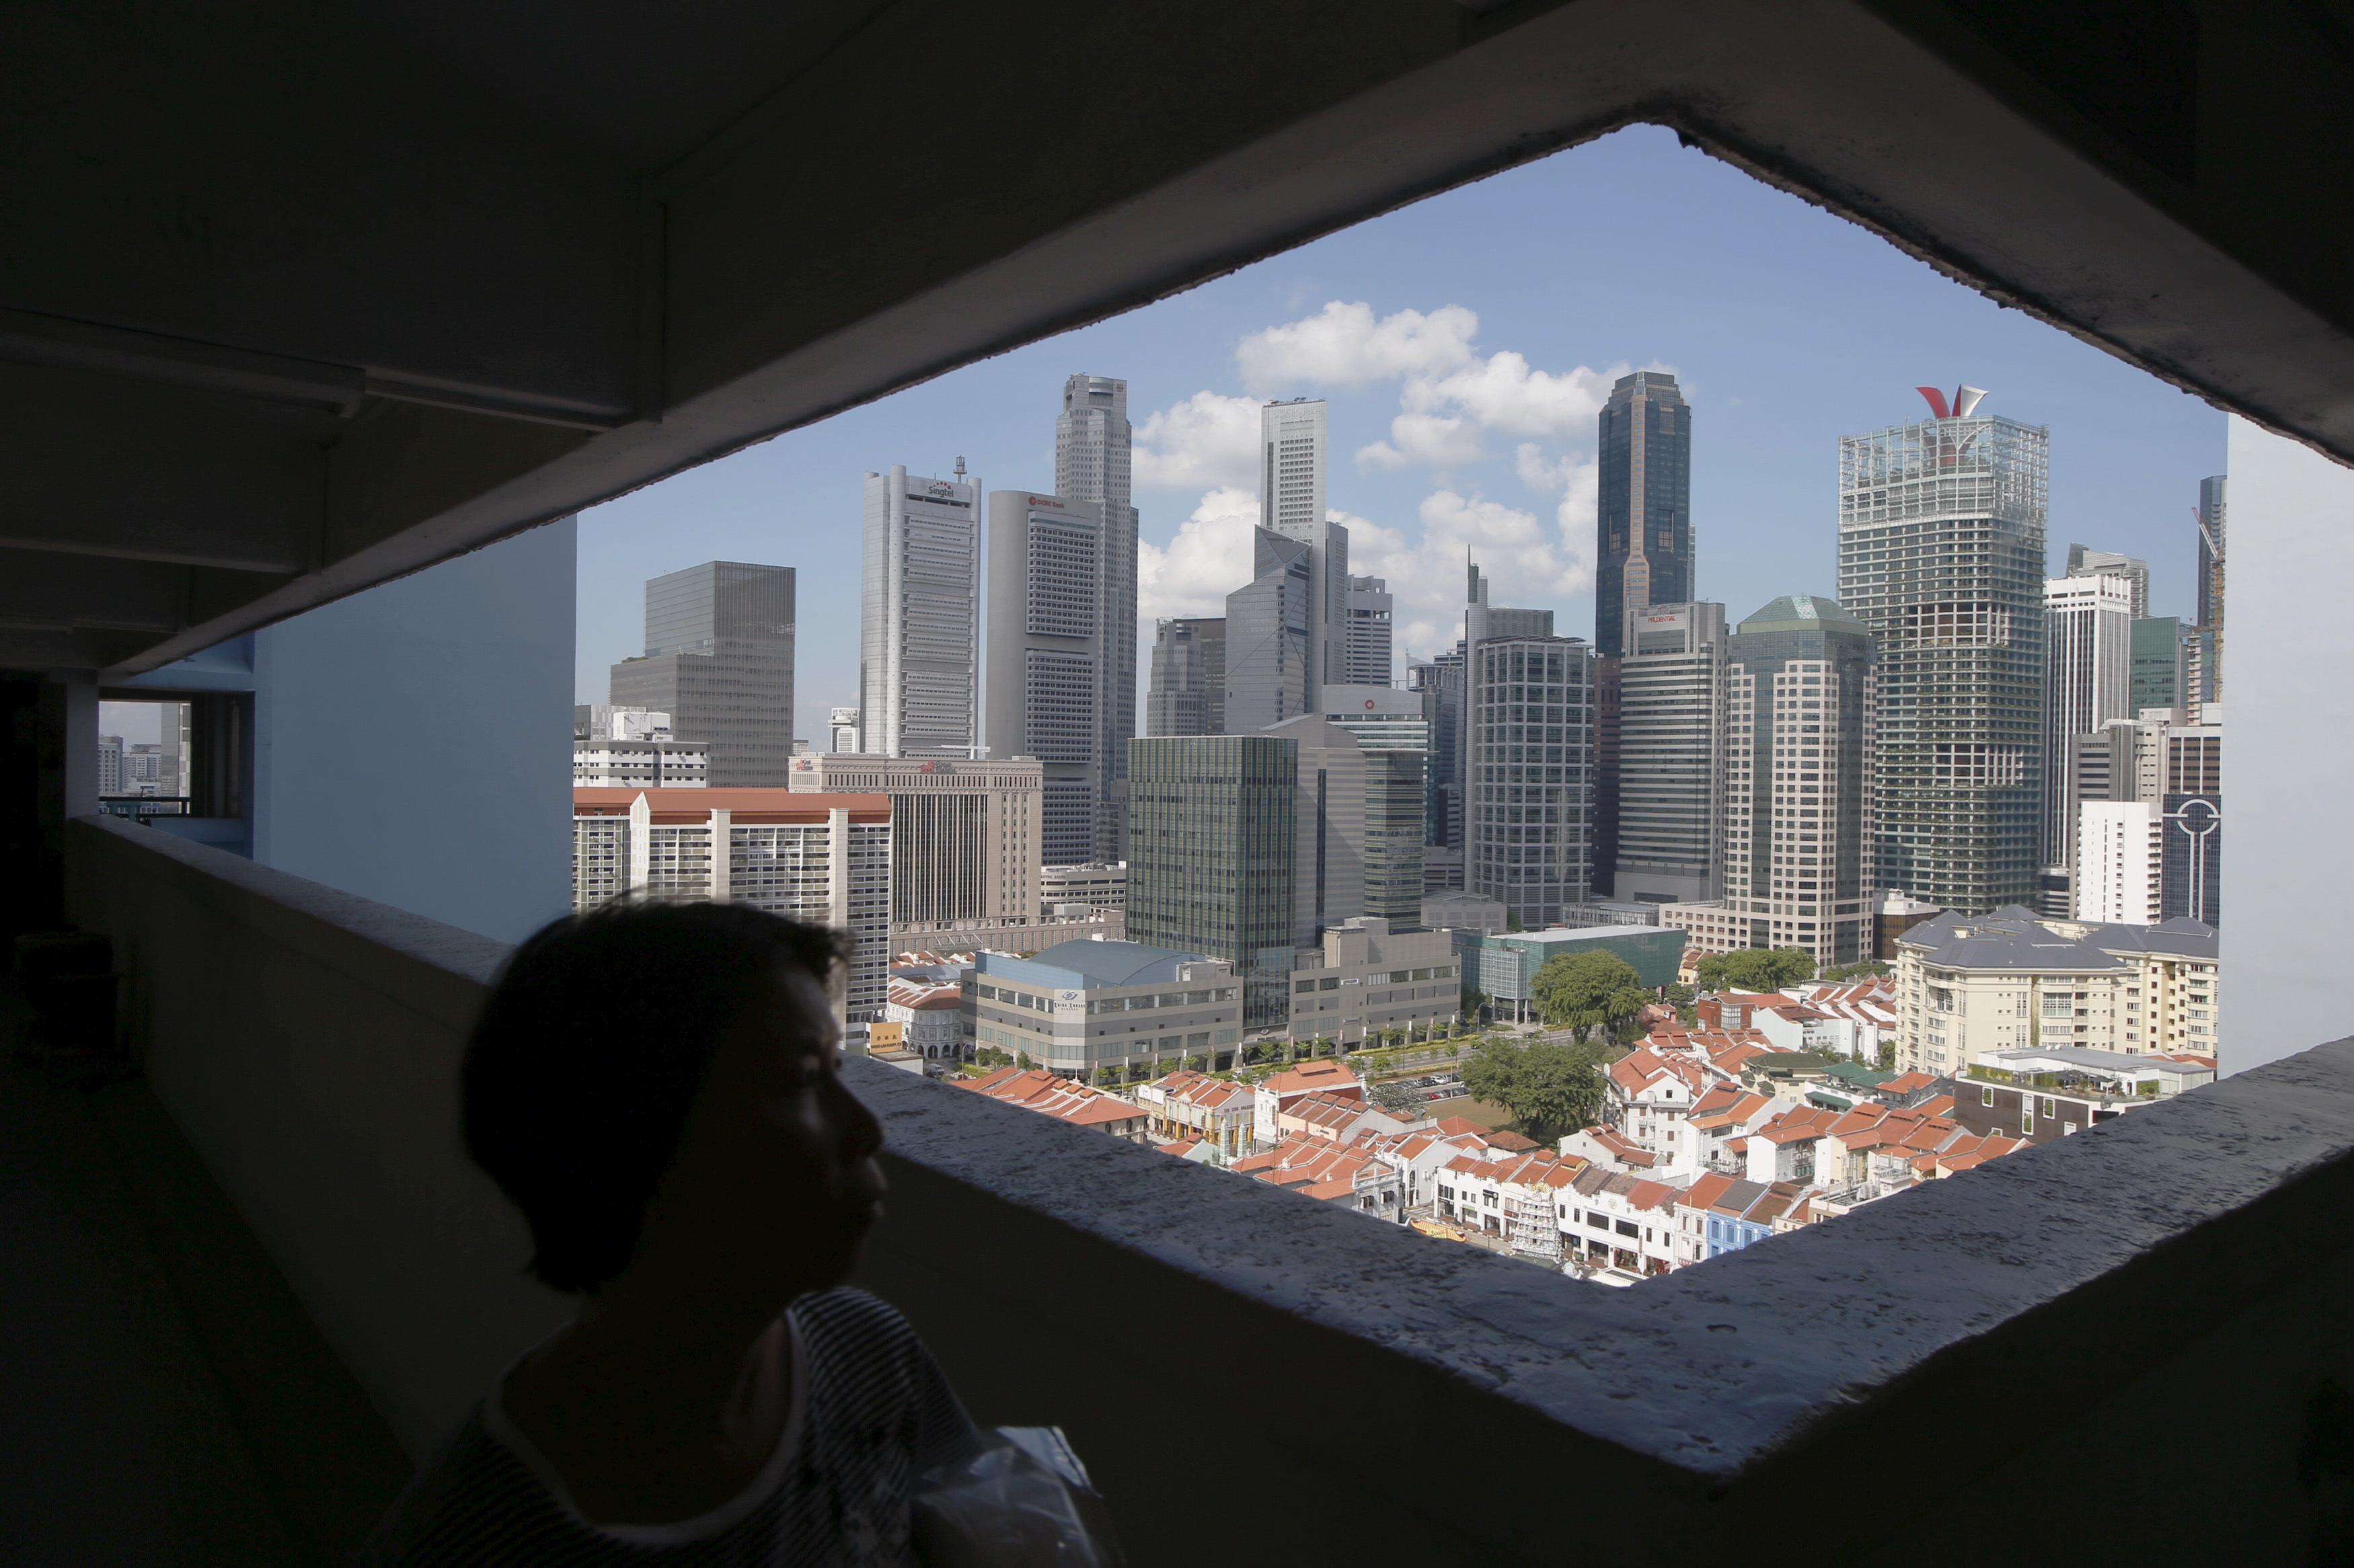 Yahoo Poll: Are Singapore government policies too complex for the layman to grasp?